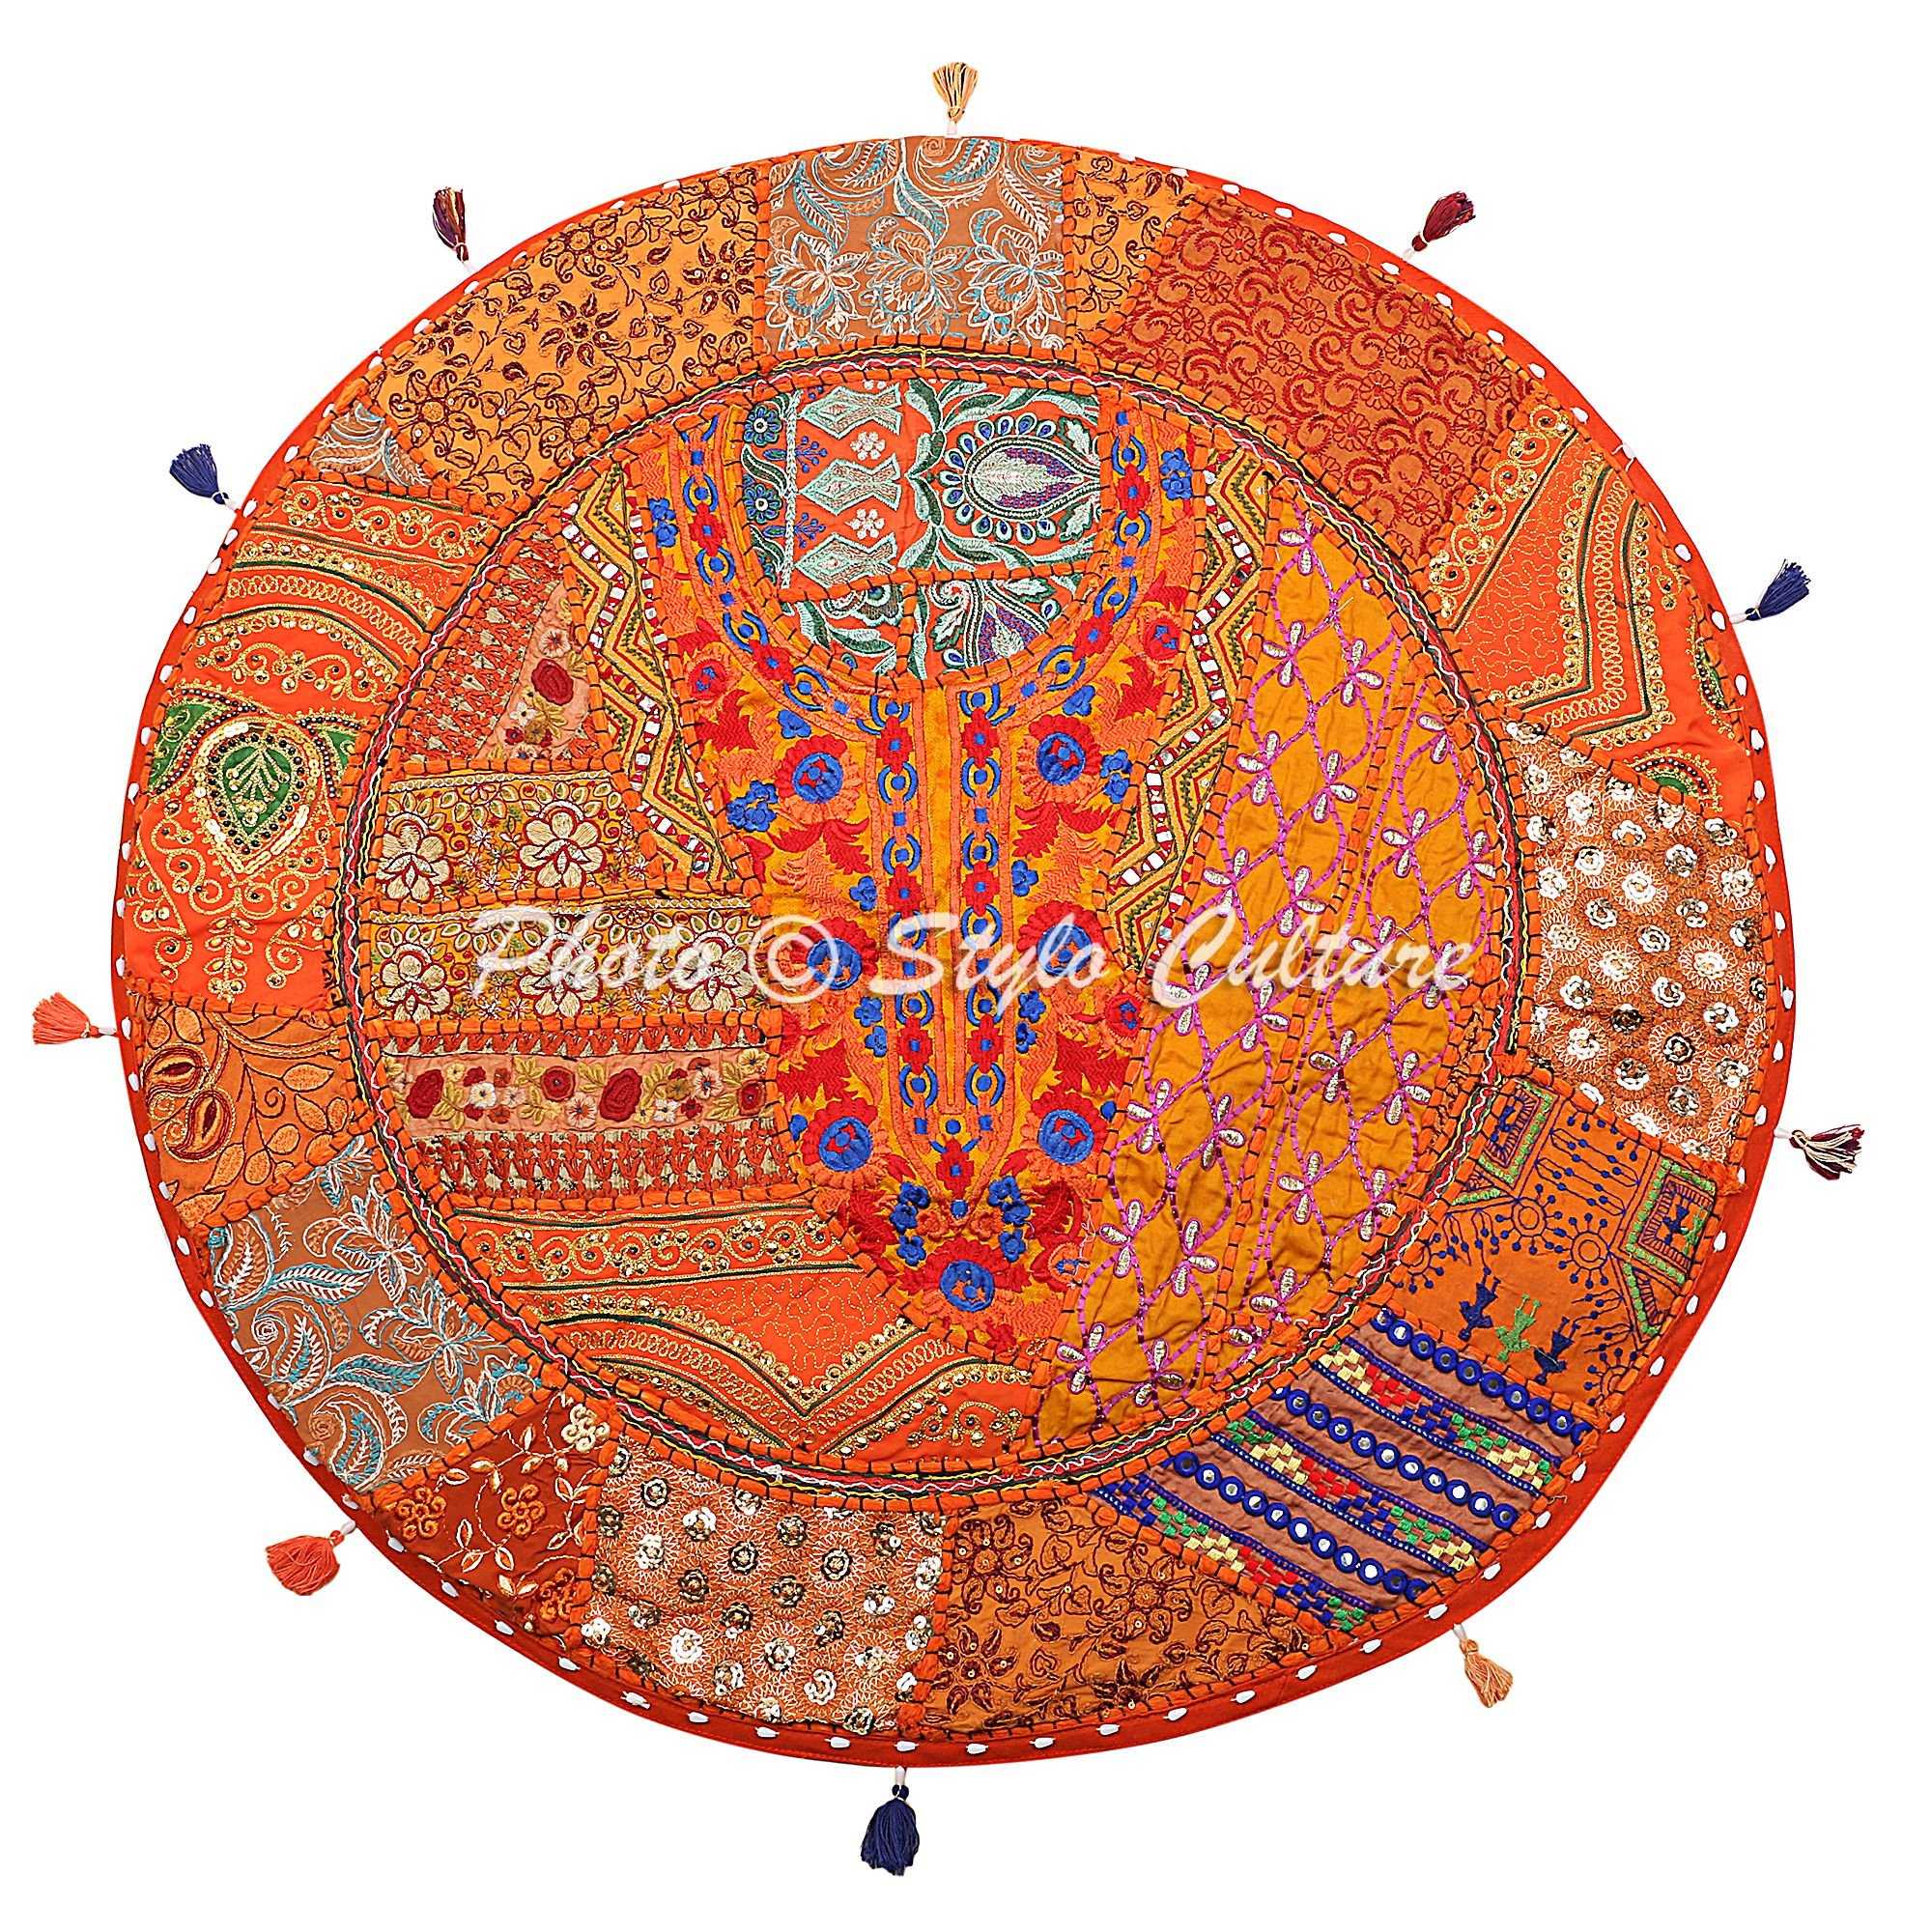 Stylo Culture Ethnic Cotton Large Floor Cushion Cover Seating Vintage Embroidered Patchwork Orange 32'' Indian Floor Pillow Cover